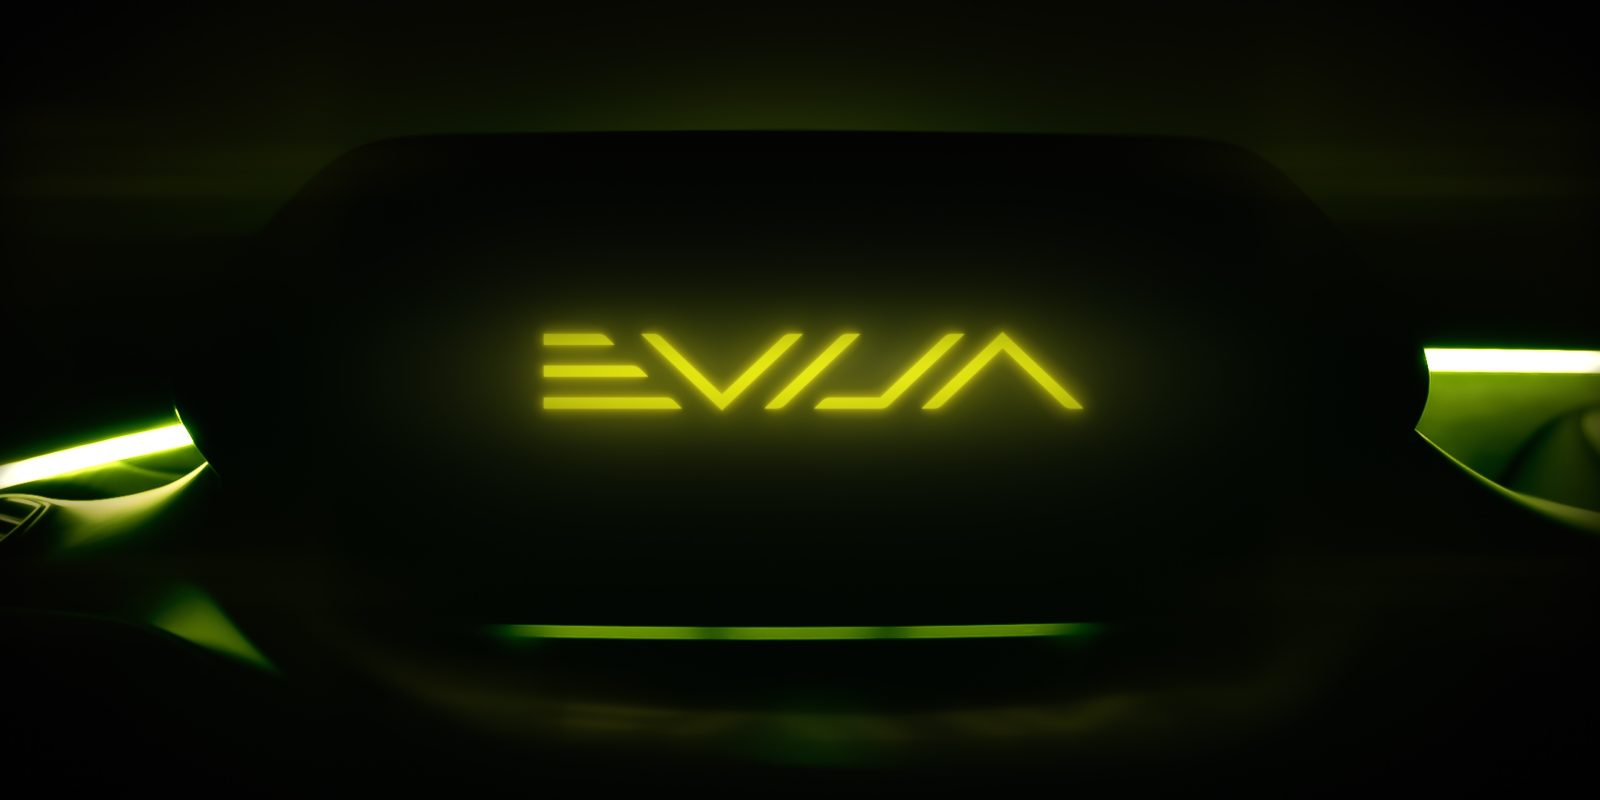 Lotus names its electric hypercar Evija before its debut, releases